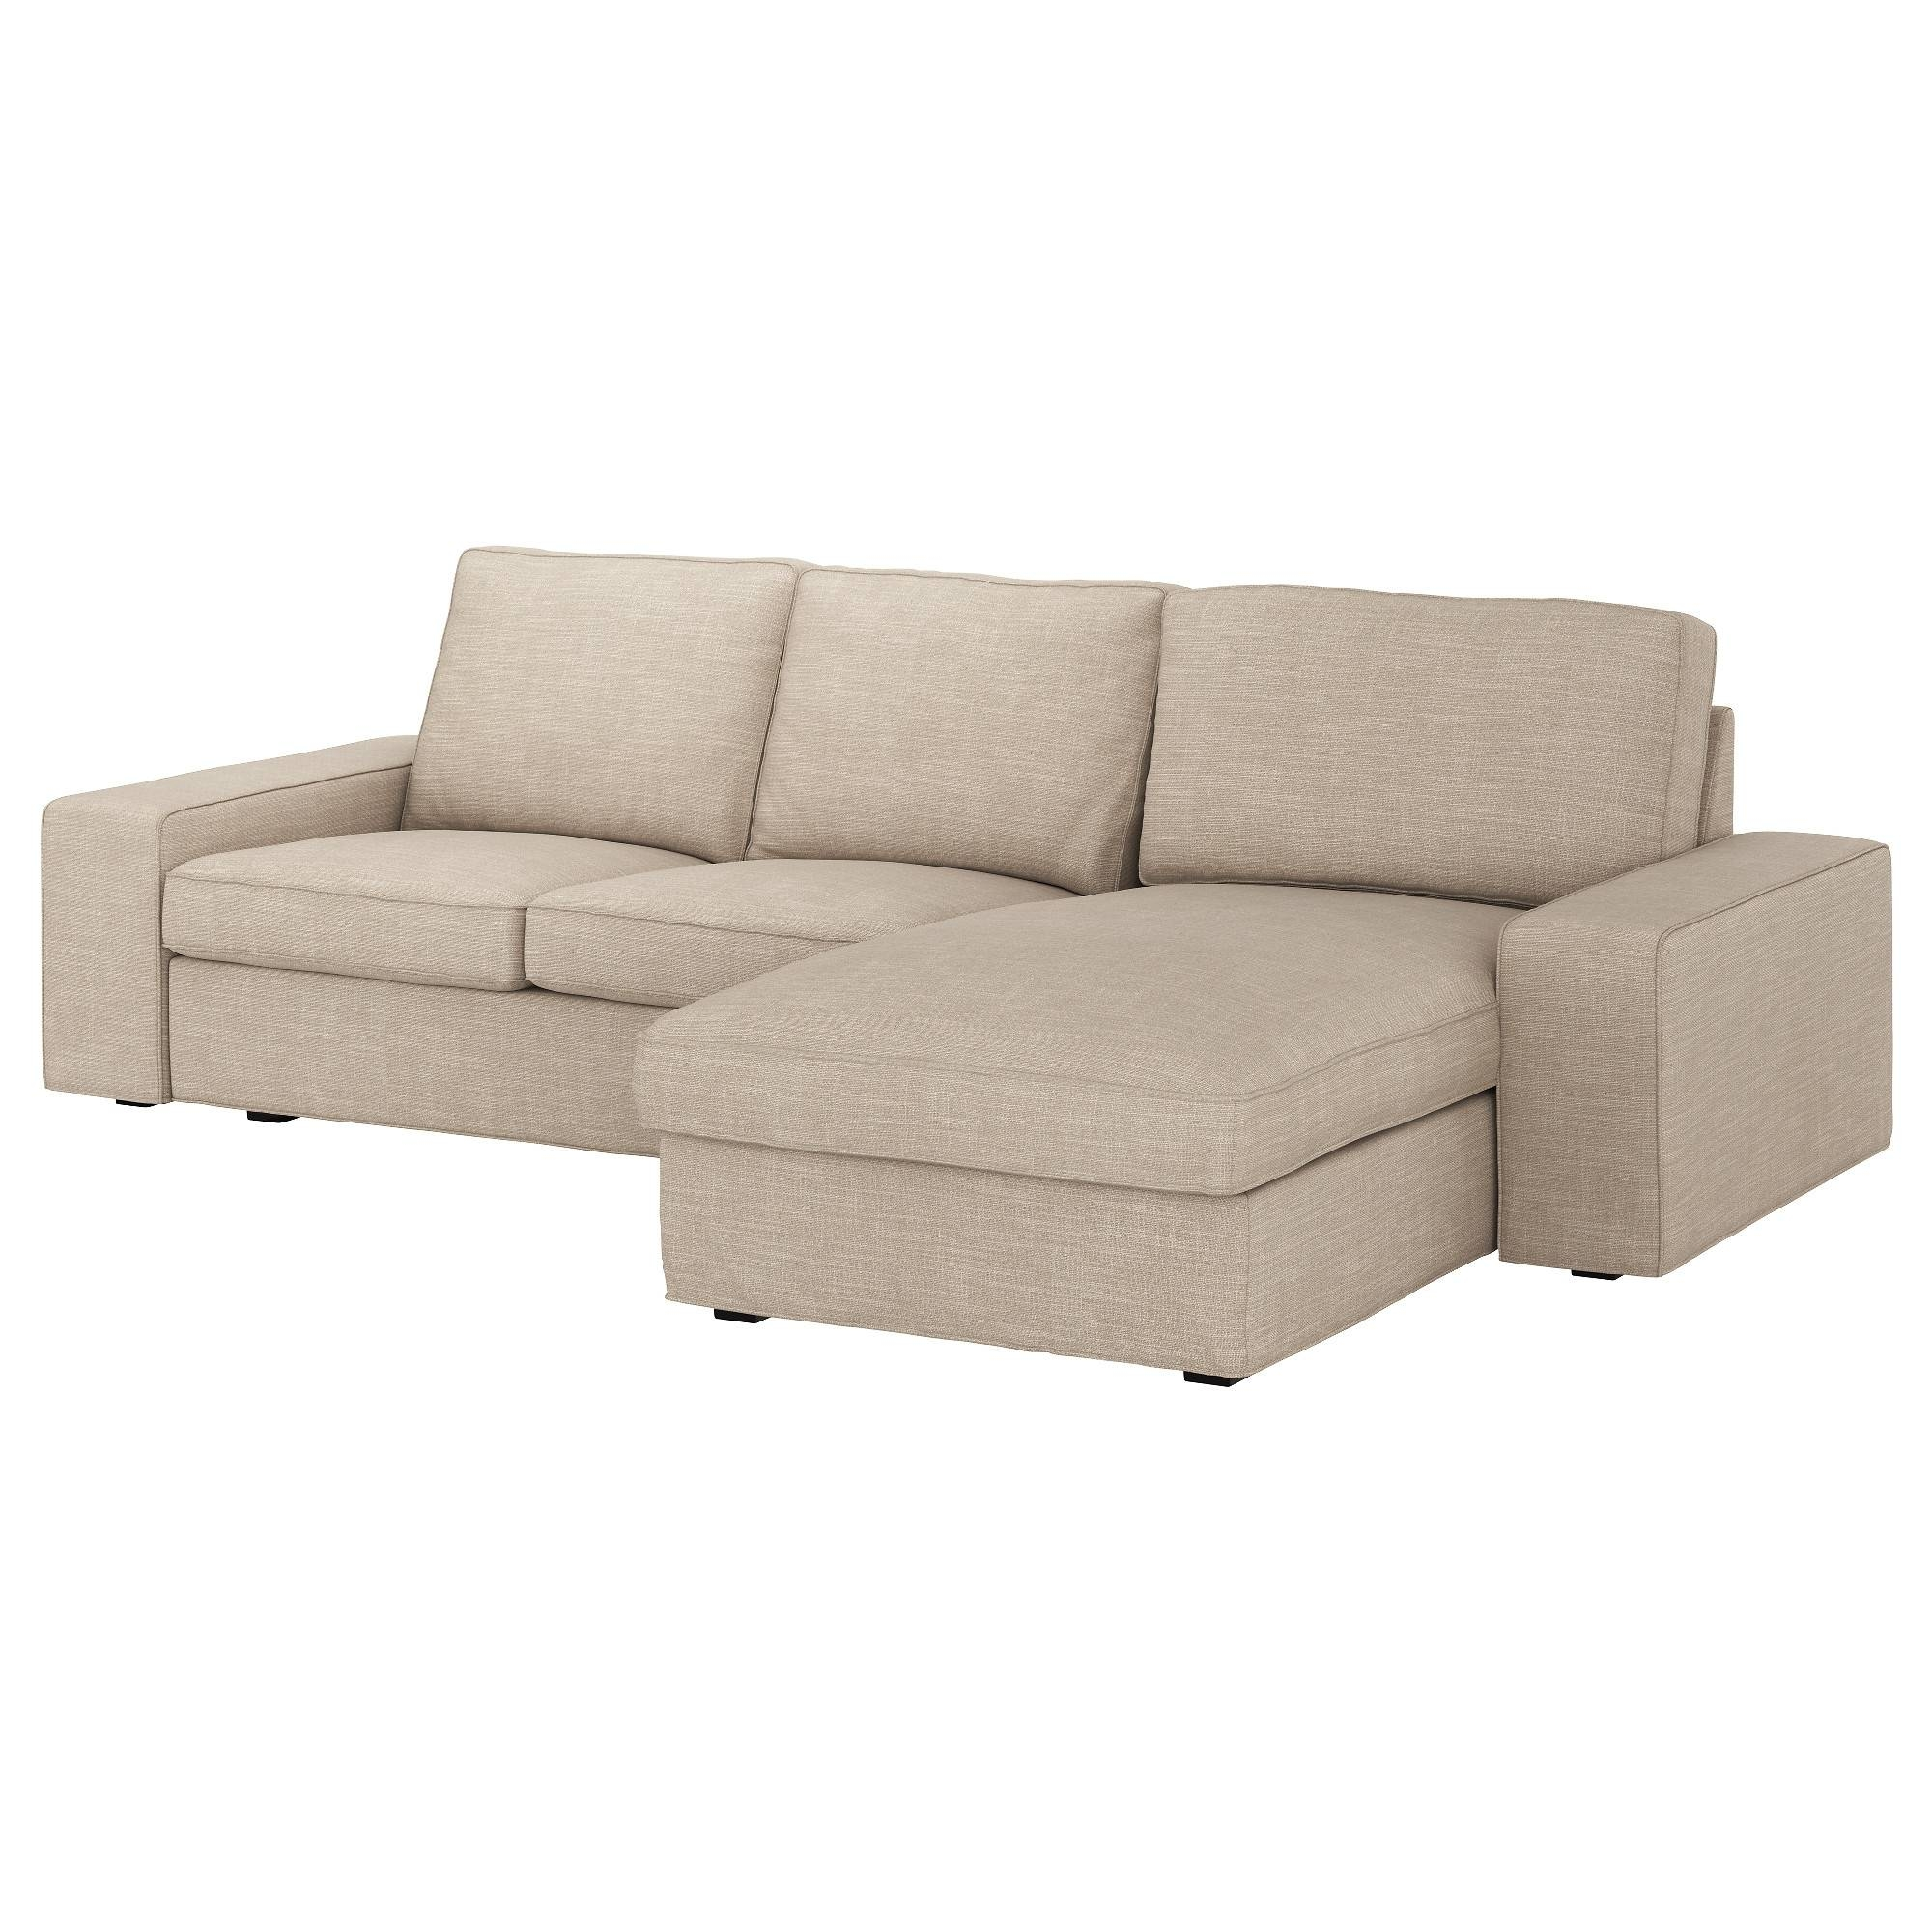 30 Collection of Ikea Two Seater Sofas